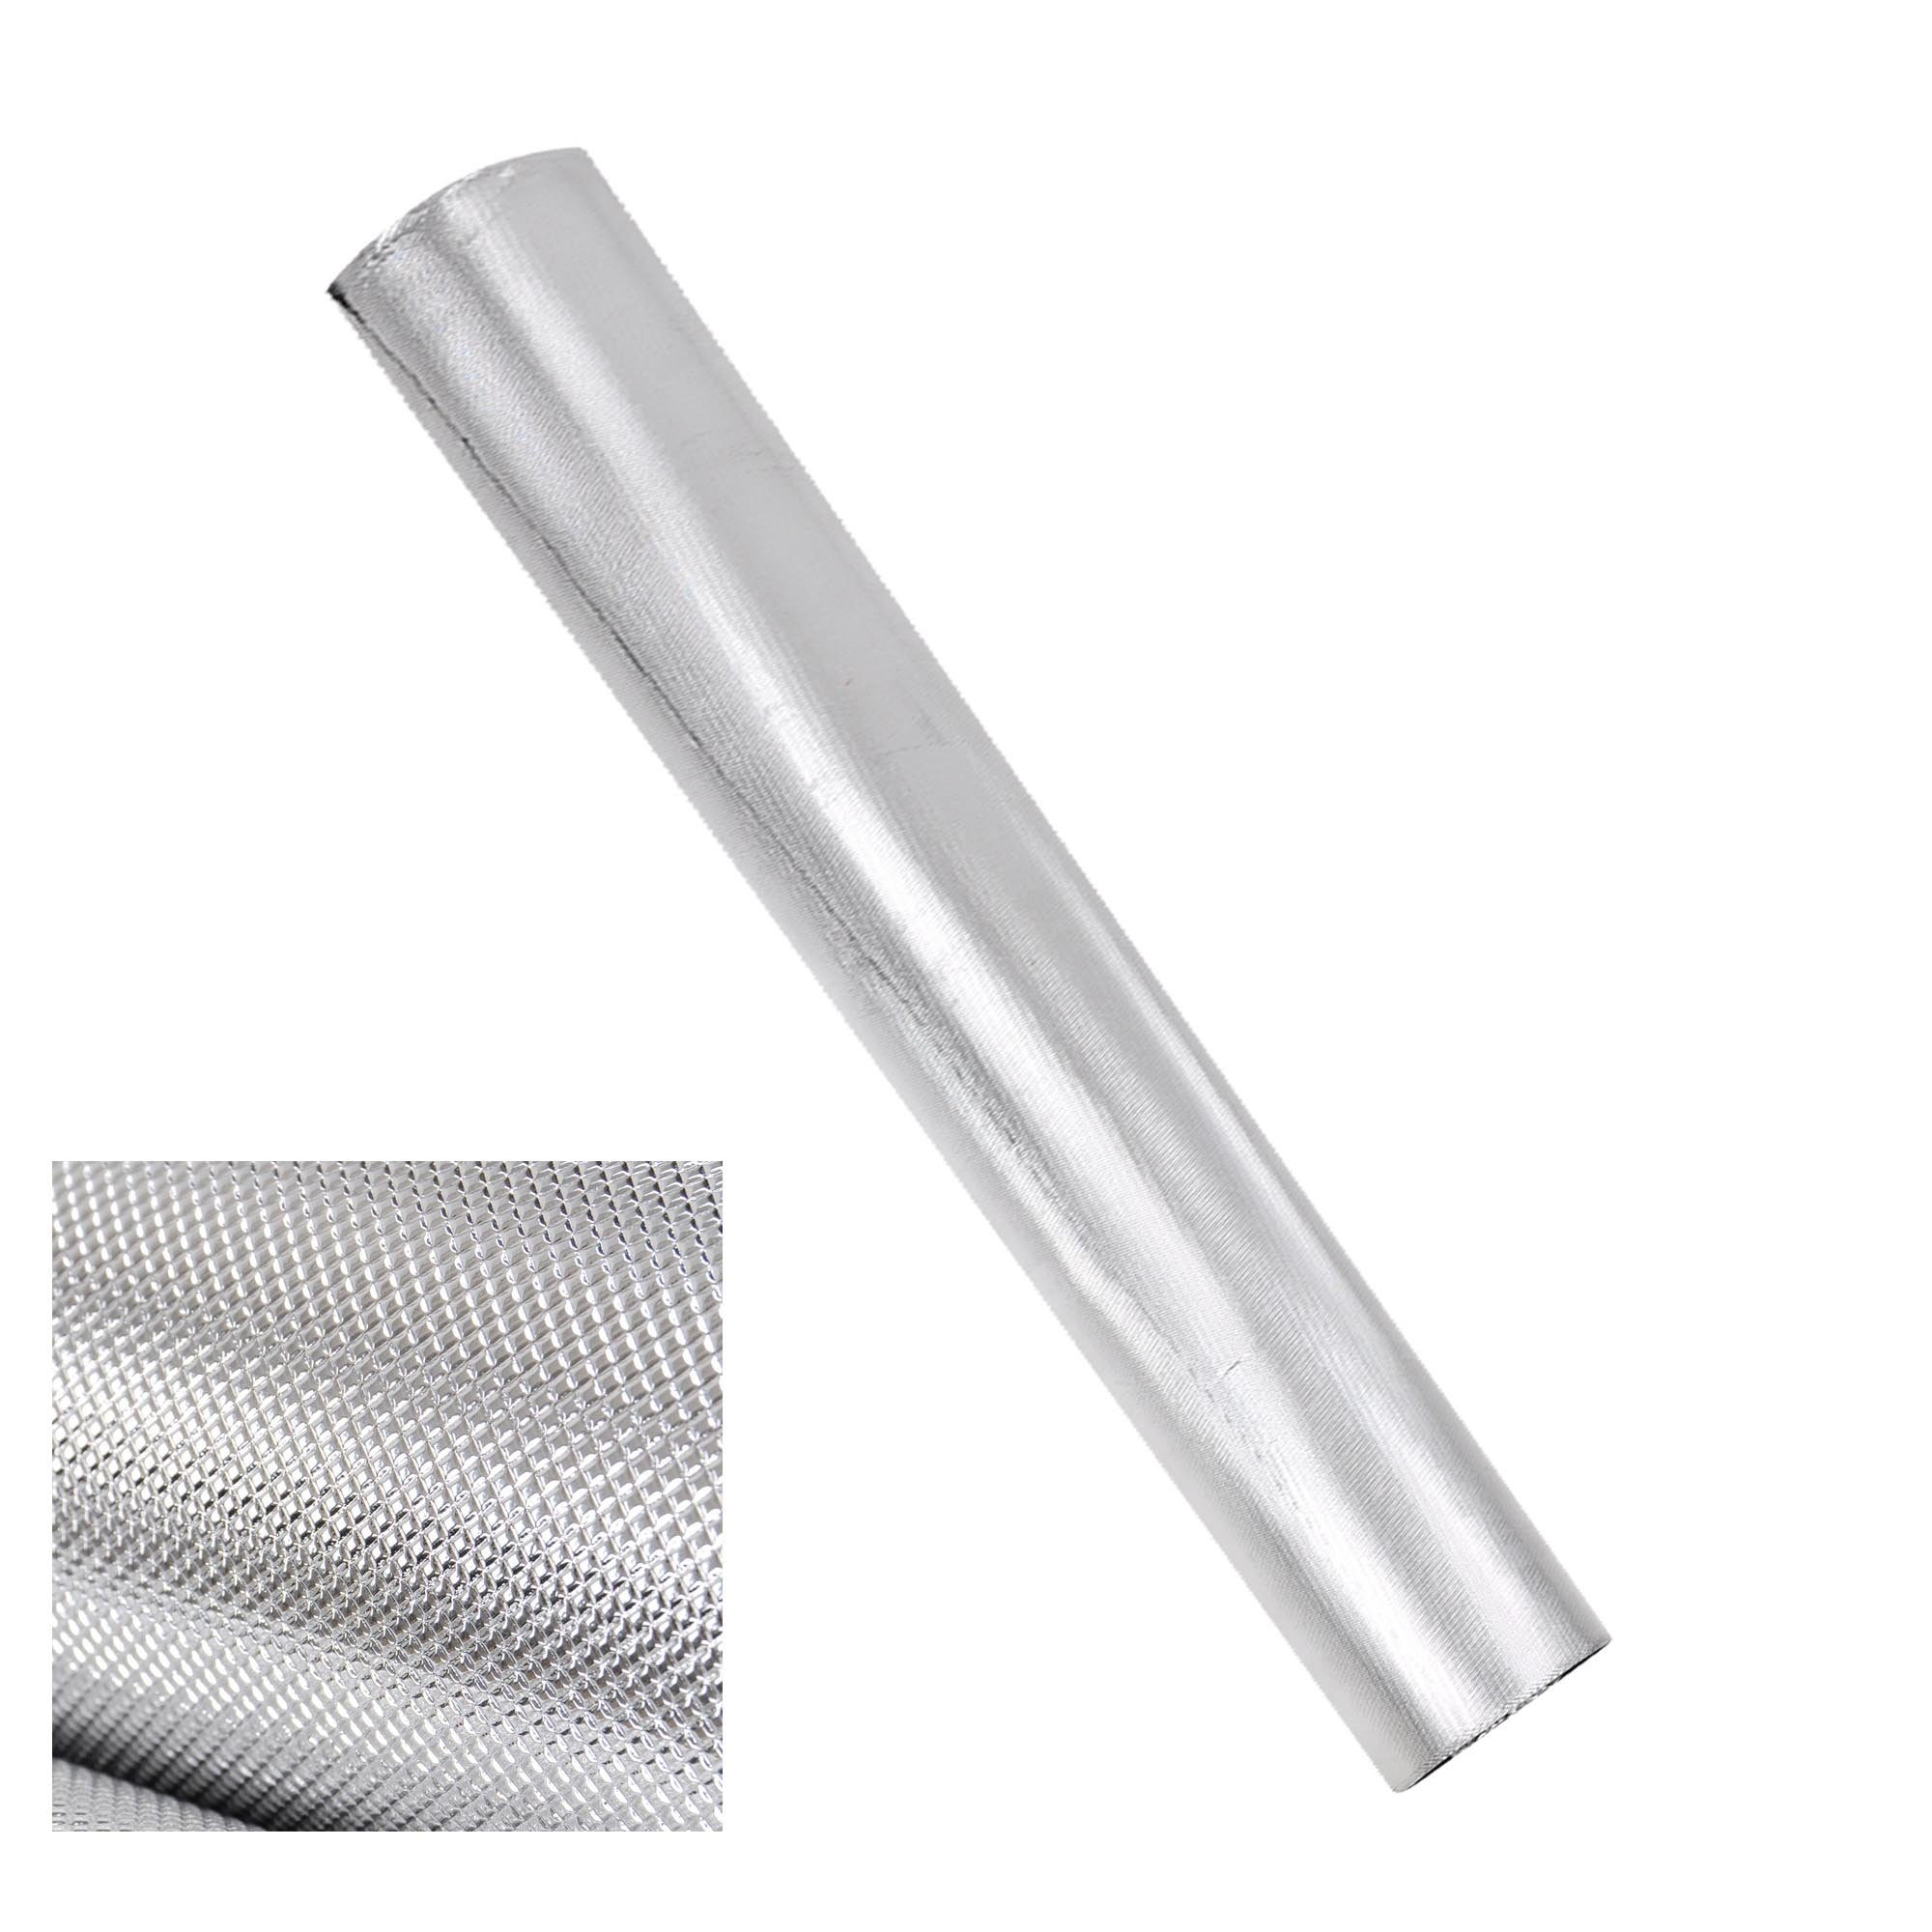 5x100ft Diamond Foil Silver Reflective Mylar Grow Room Film 210D Oxford Cloth